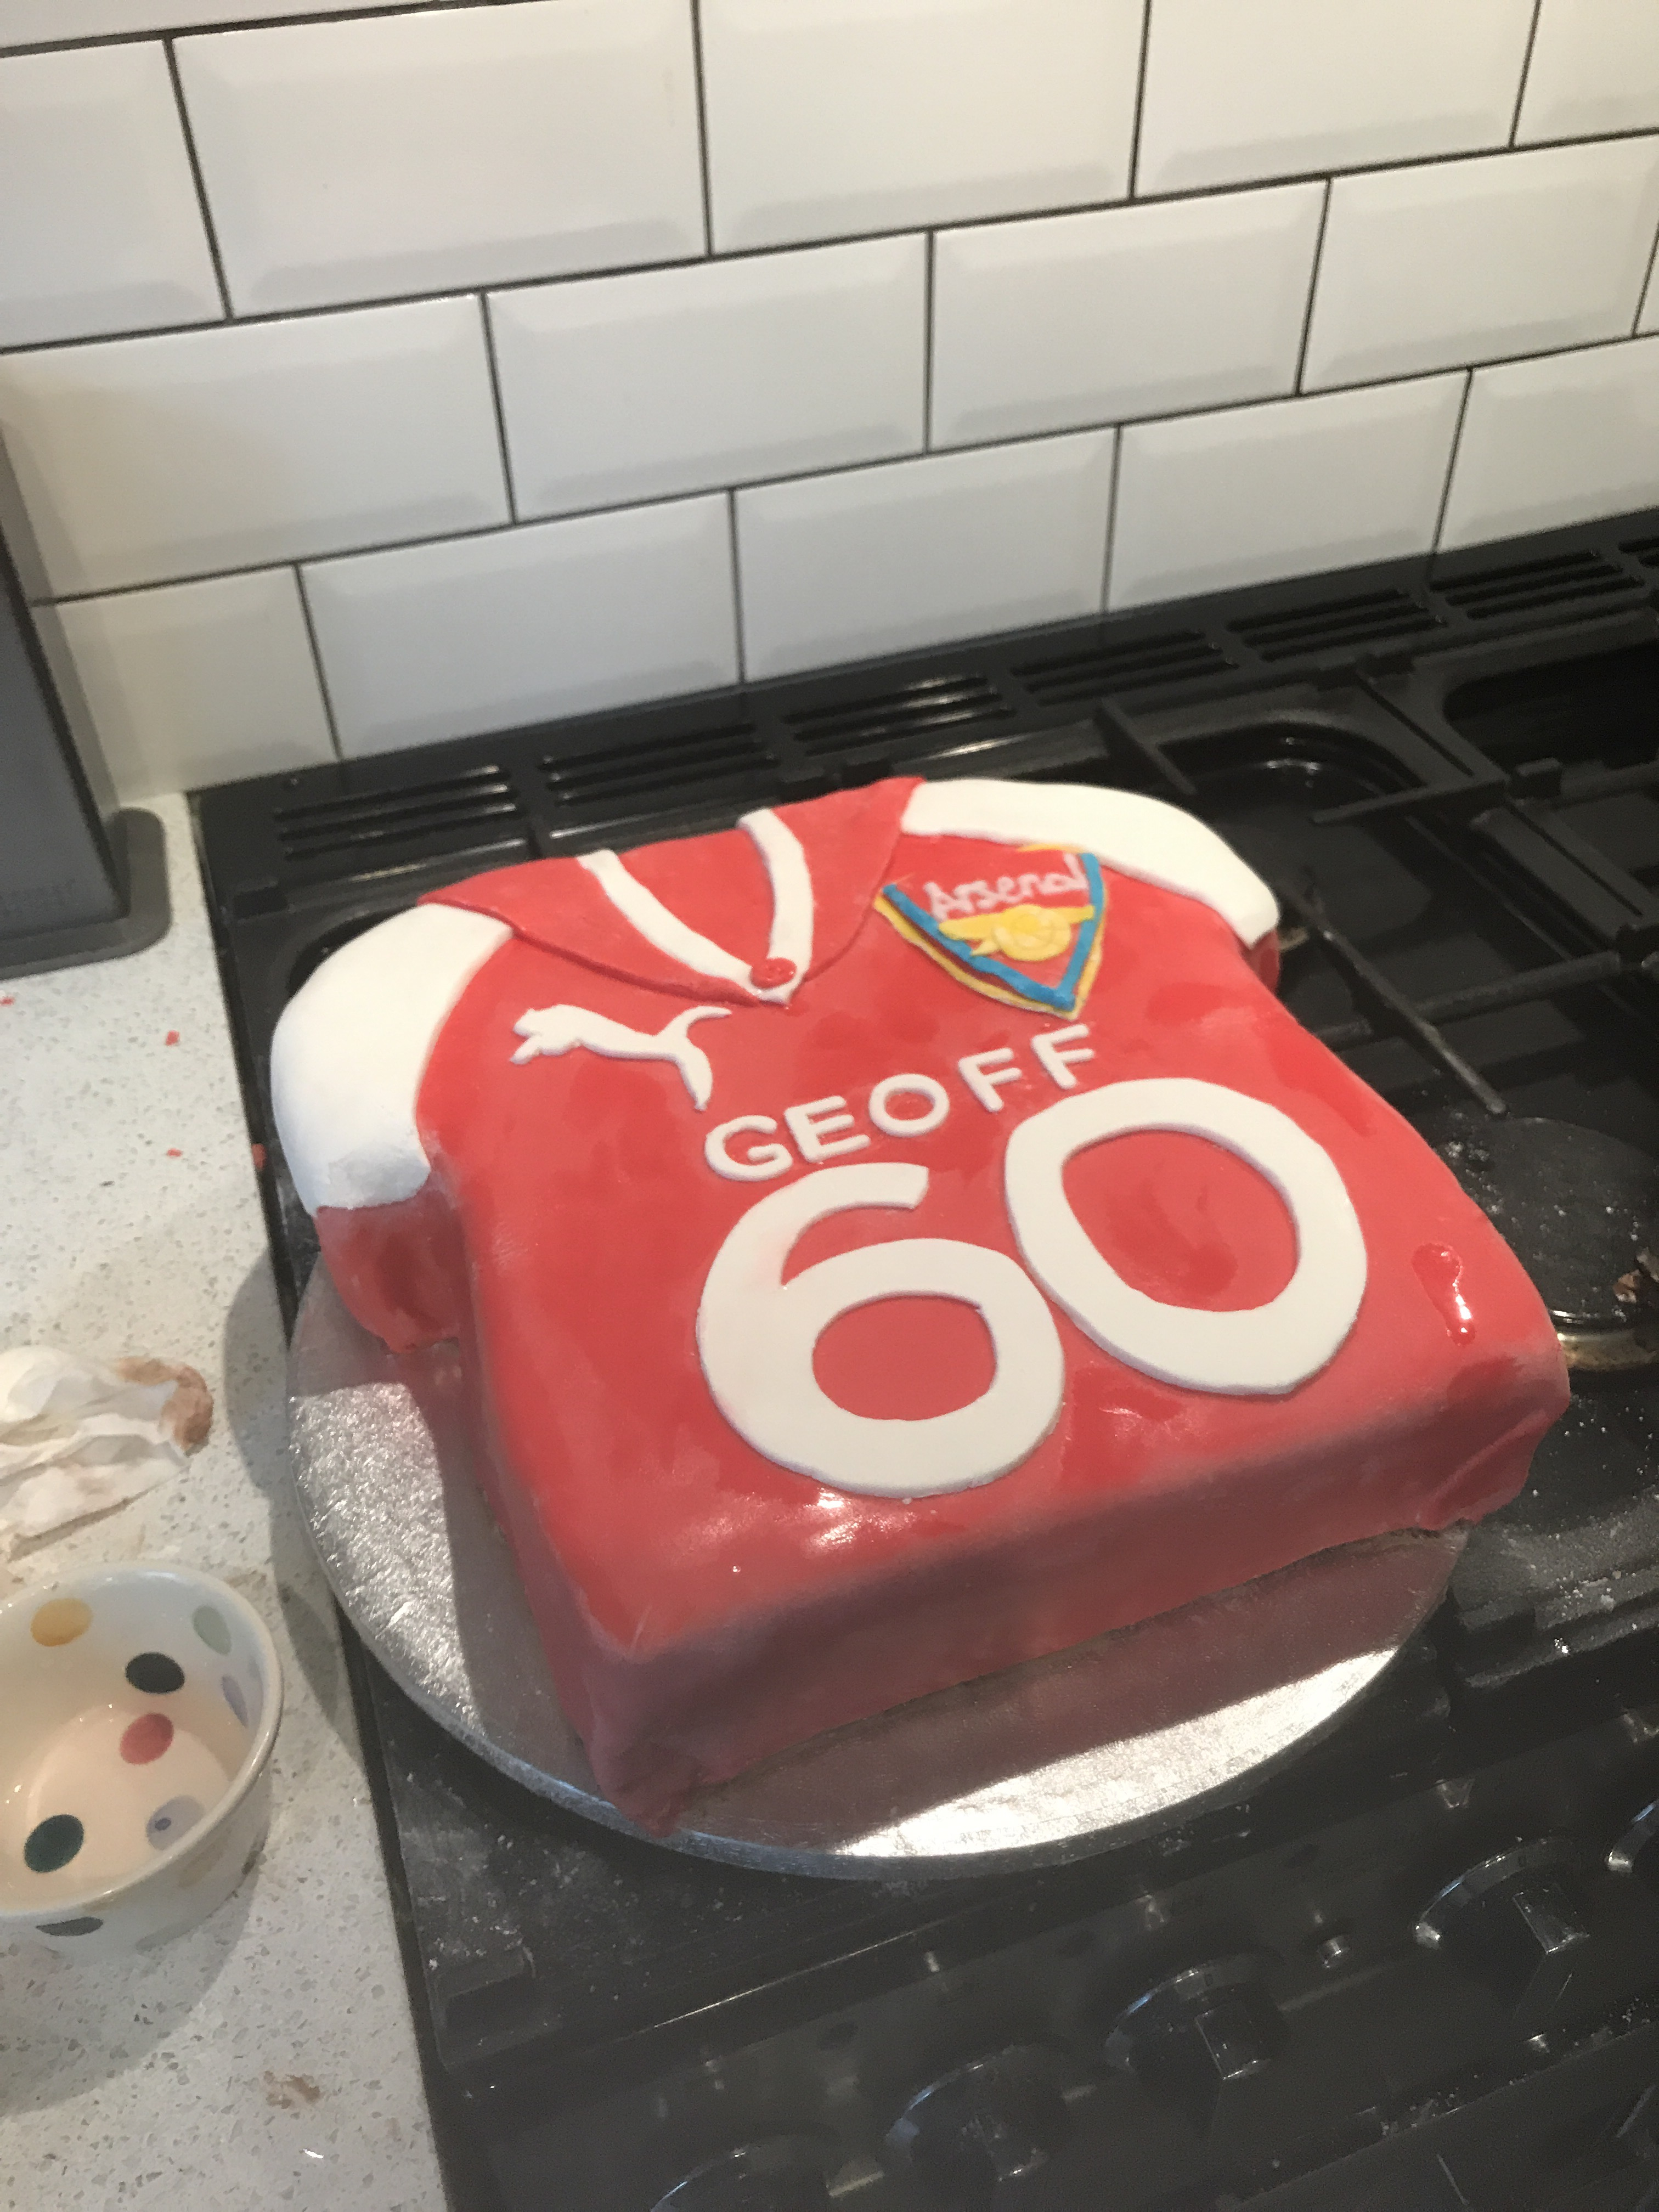 Surprising Gbbo Week 1 Illusion Cake Arsenal Football Shirt 60Th Birthday Personalised Birthday Cards Paralily Jamesorg